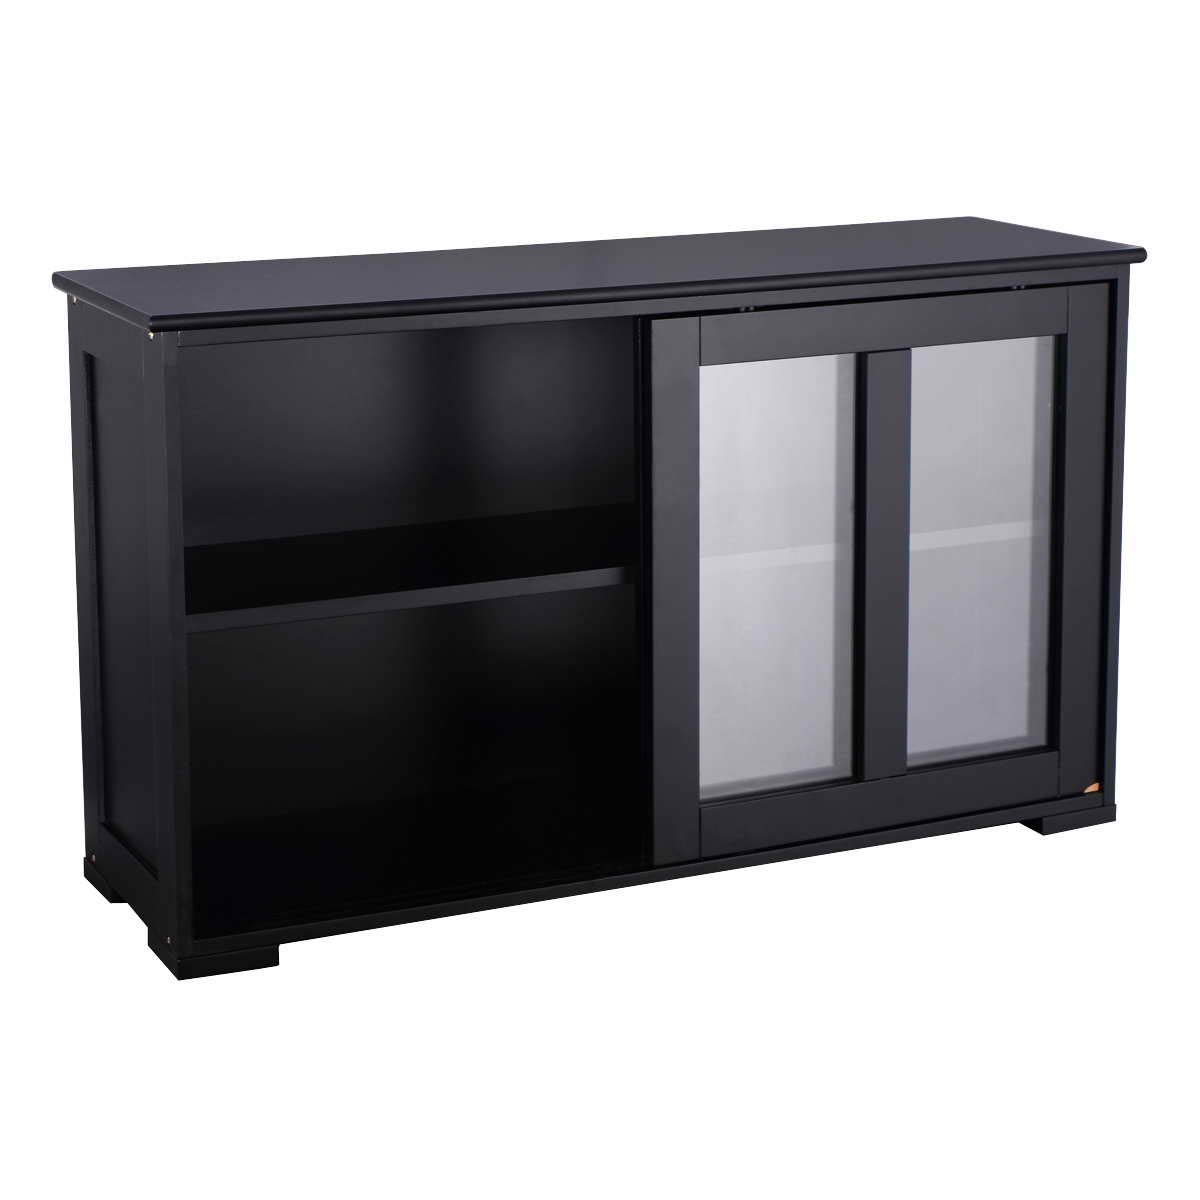 WATERJOY Kitchen Storage Sideboard, Stackable Buffet Storage Cabinet with Sliding Door Tempered-Glass Panels for Home Kitchen, Antique Black by WATERJOY (Image #5)